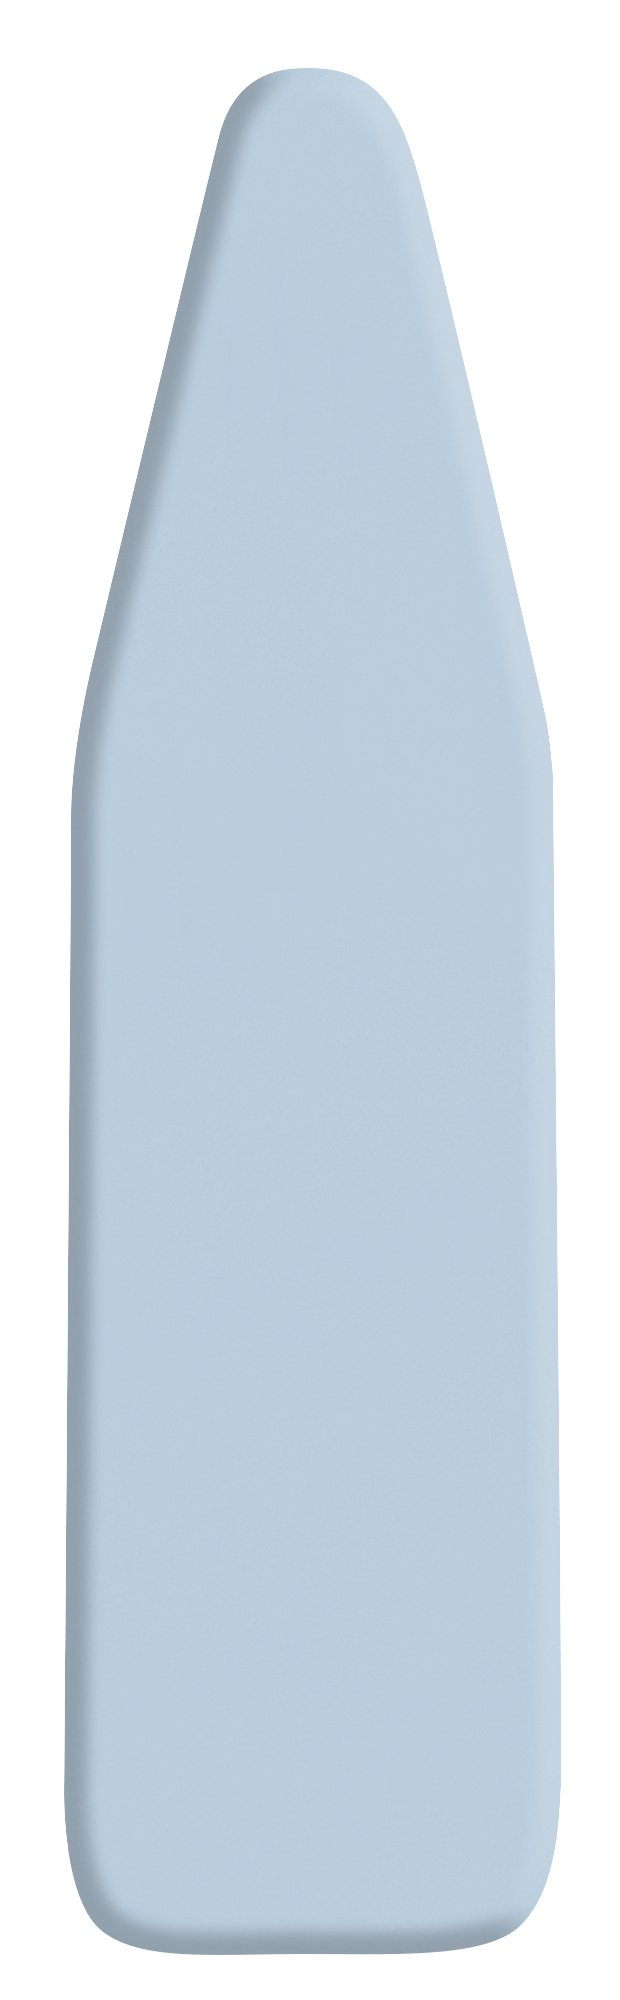 Utopia Home Ironing Board Cover and Pad - Silicone Coated Extra Thick Pad - Scorch Resistant and Heat Reflective - 15'' x 54'' - Light Blue by Utopia Home